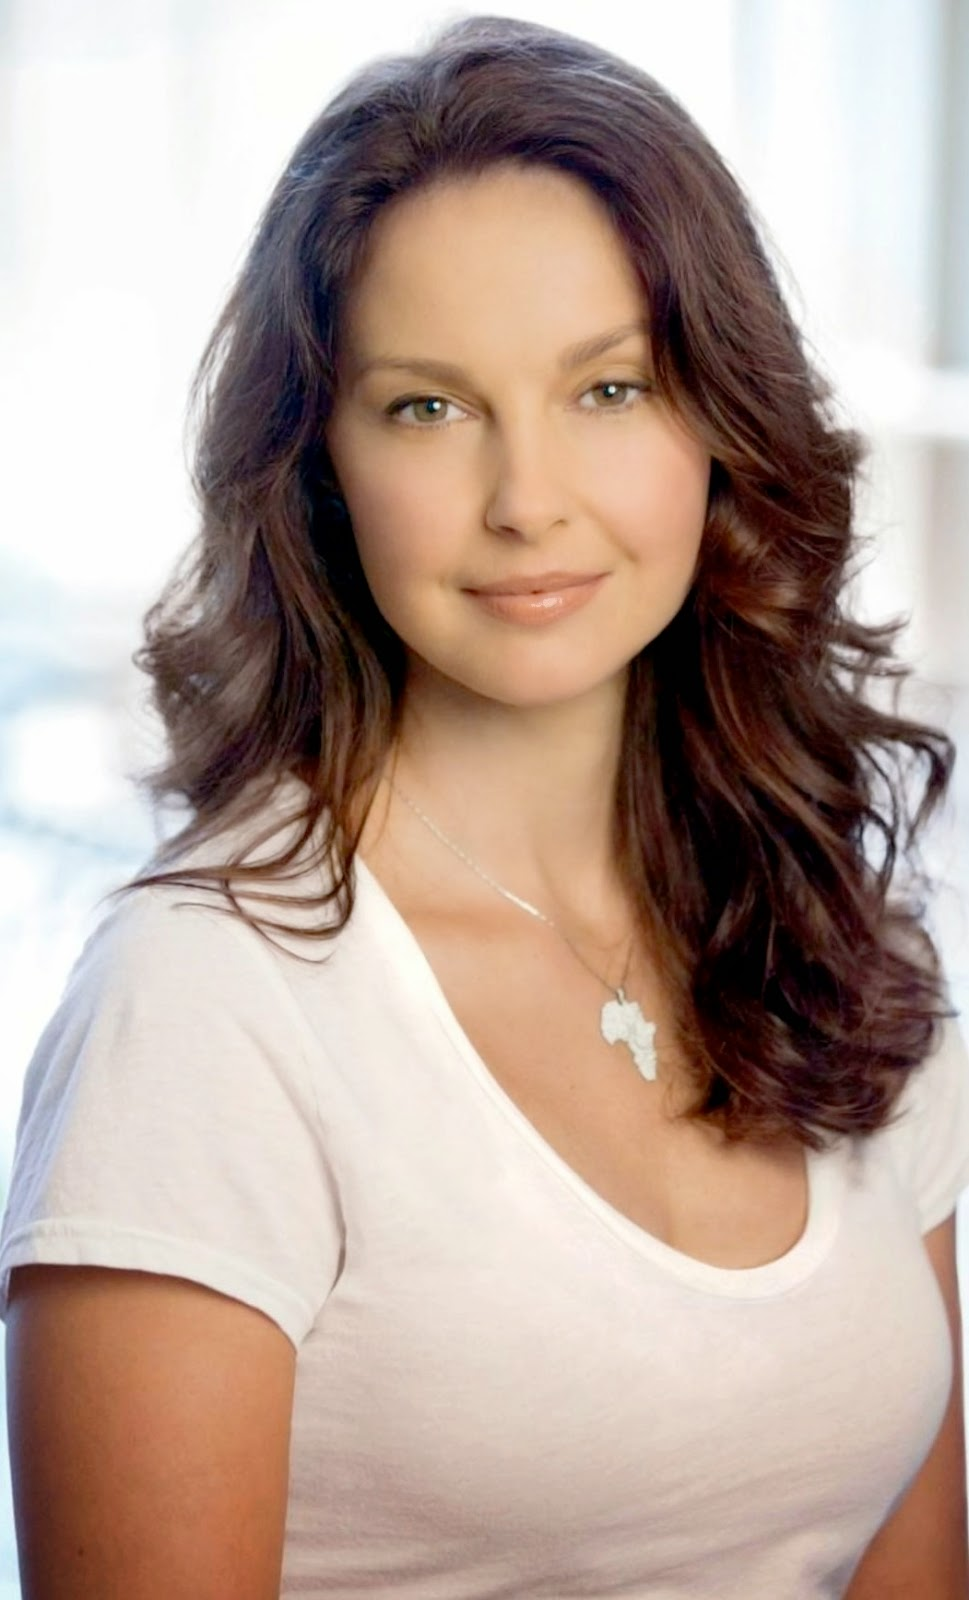 Gossip Celeb News: Ashley Judd